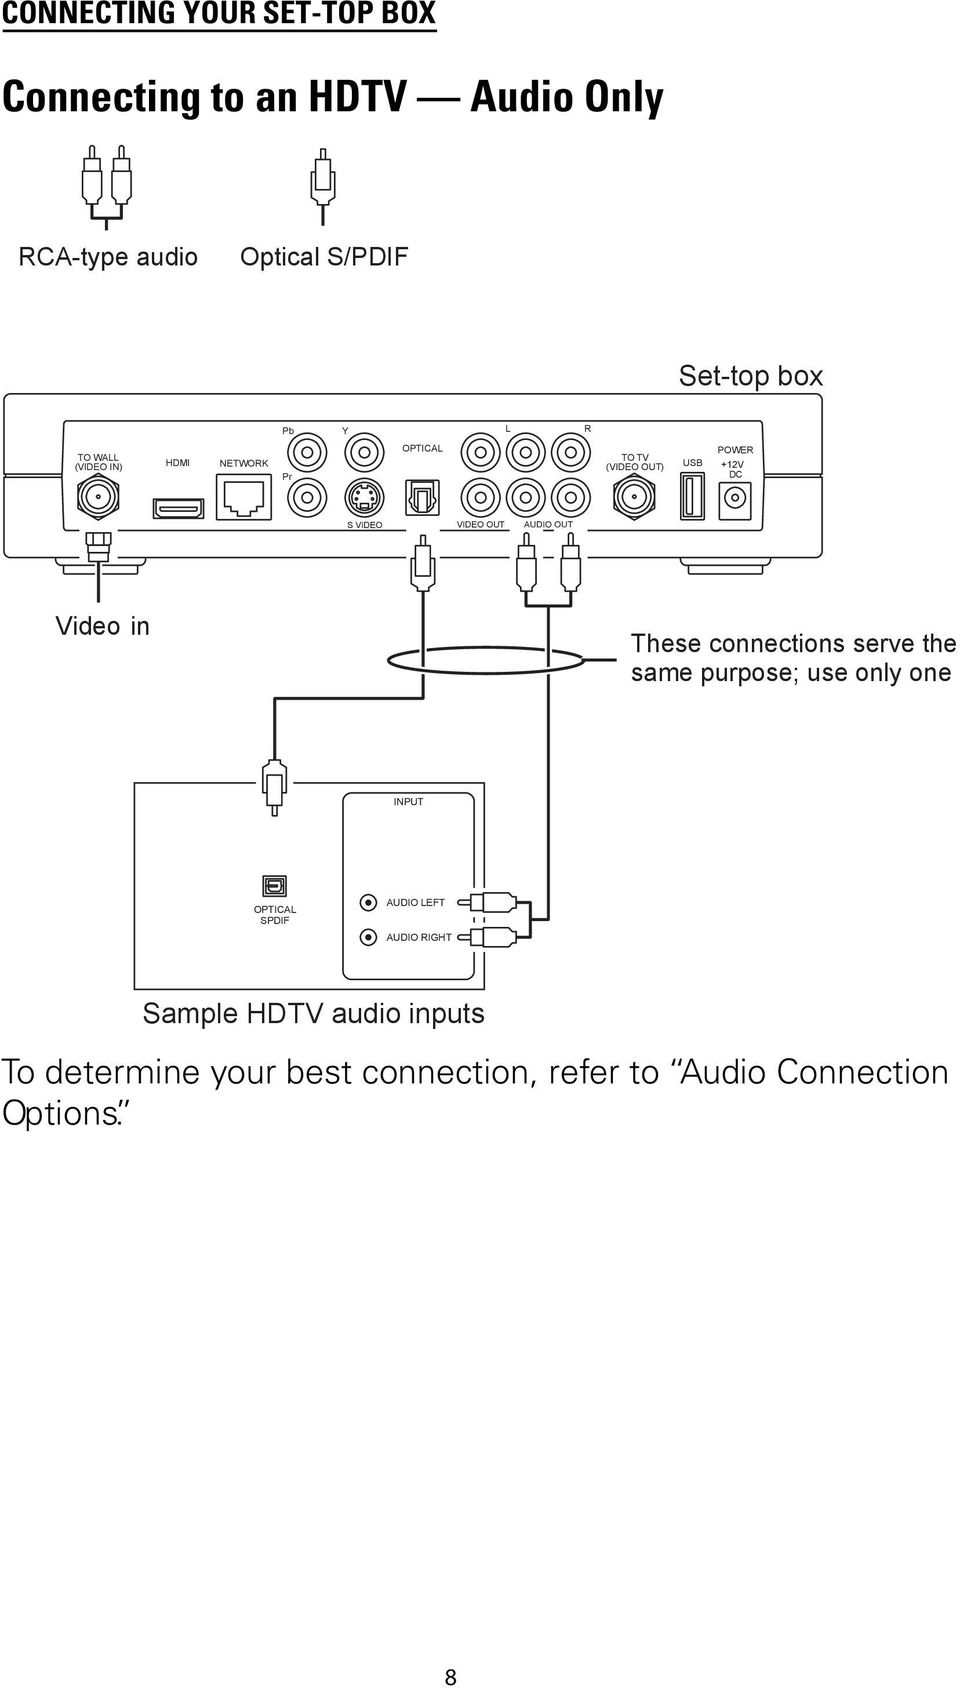 Vip1200 Vip1216 Wireless Iptv Receivers Pdf Block Diagram Hdtv Out Video In These Connections Serve The Same Purpose Use Only One Input Optica Spdif